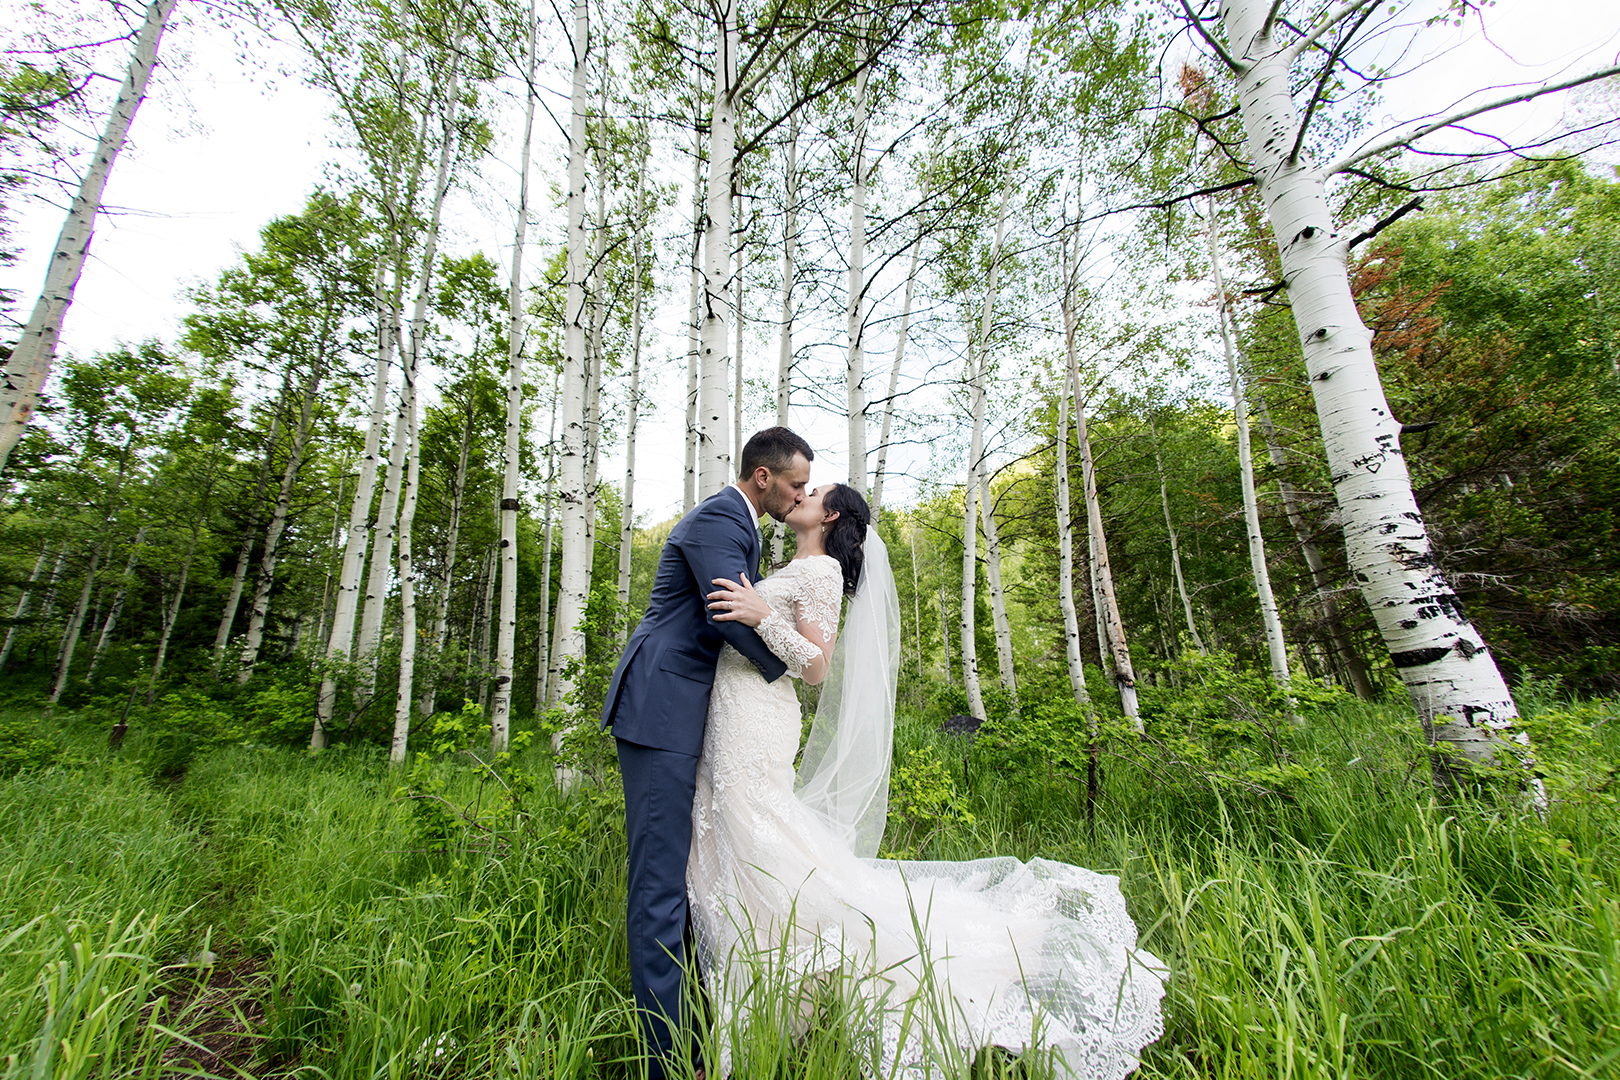 Groom and Bride Formal Wedding Photo in Mountains